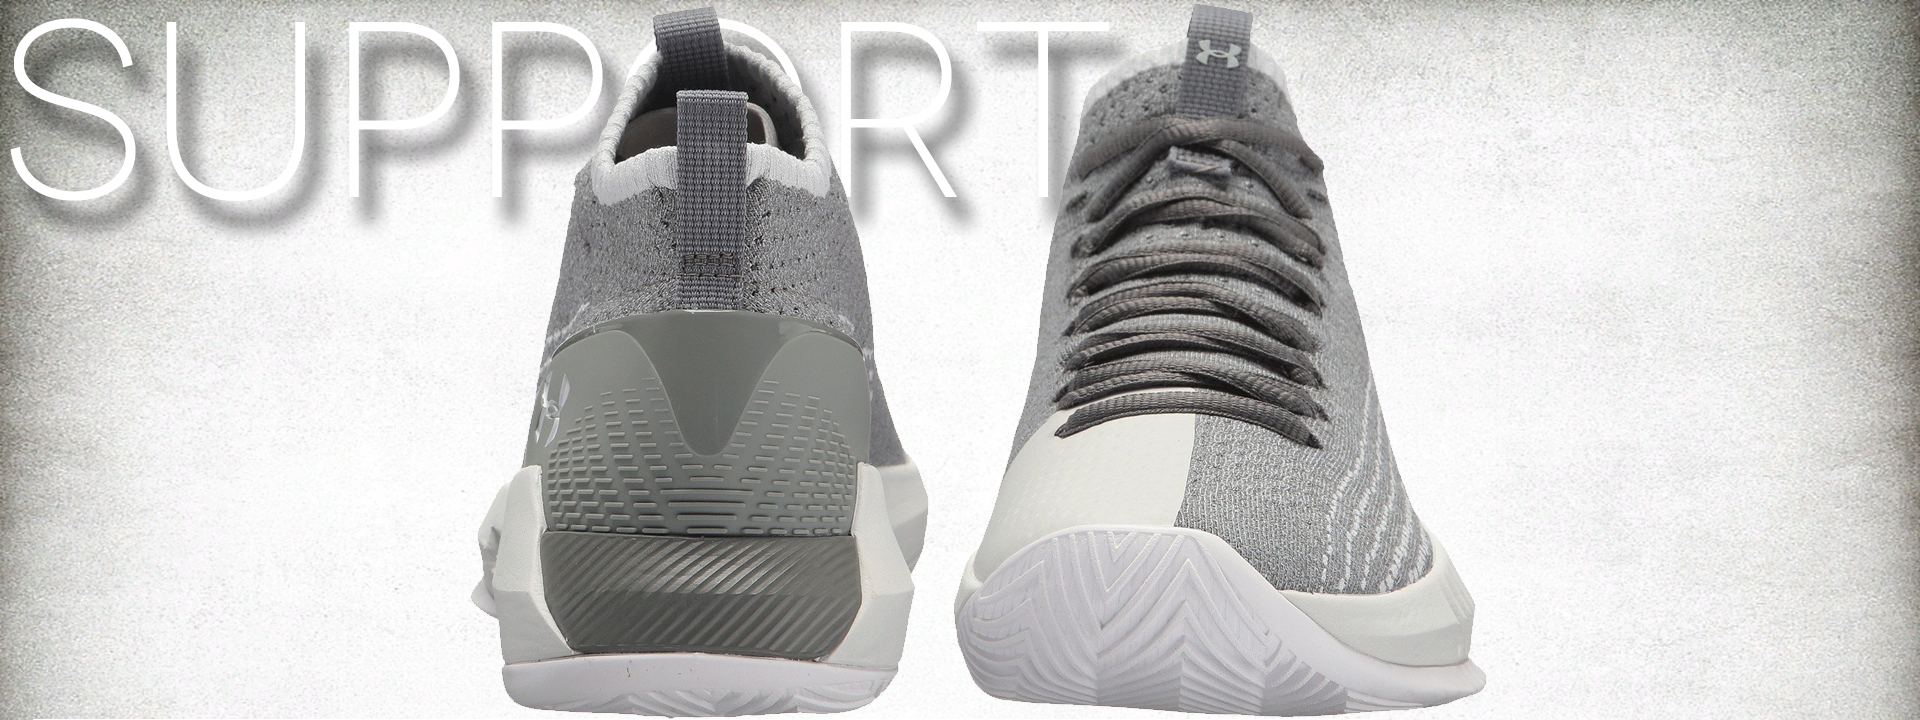 Under Armour Heat Seeker Performance Review support